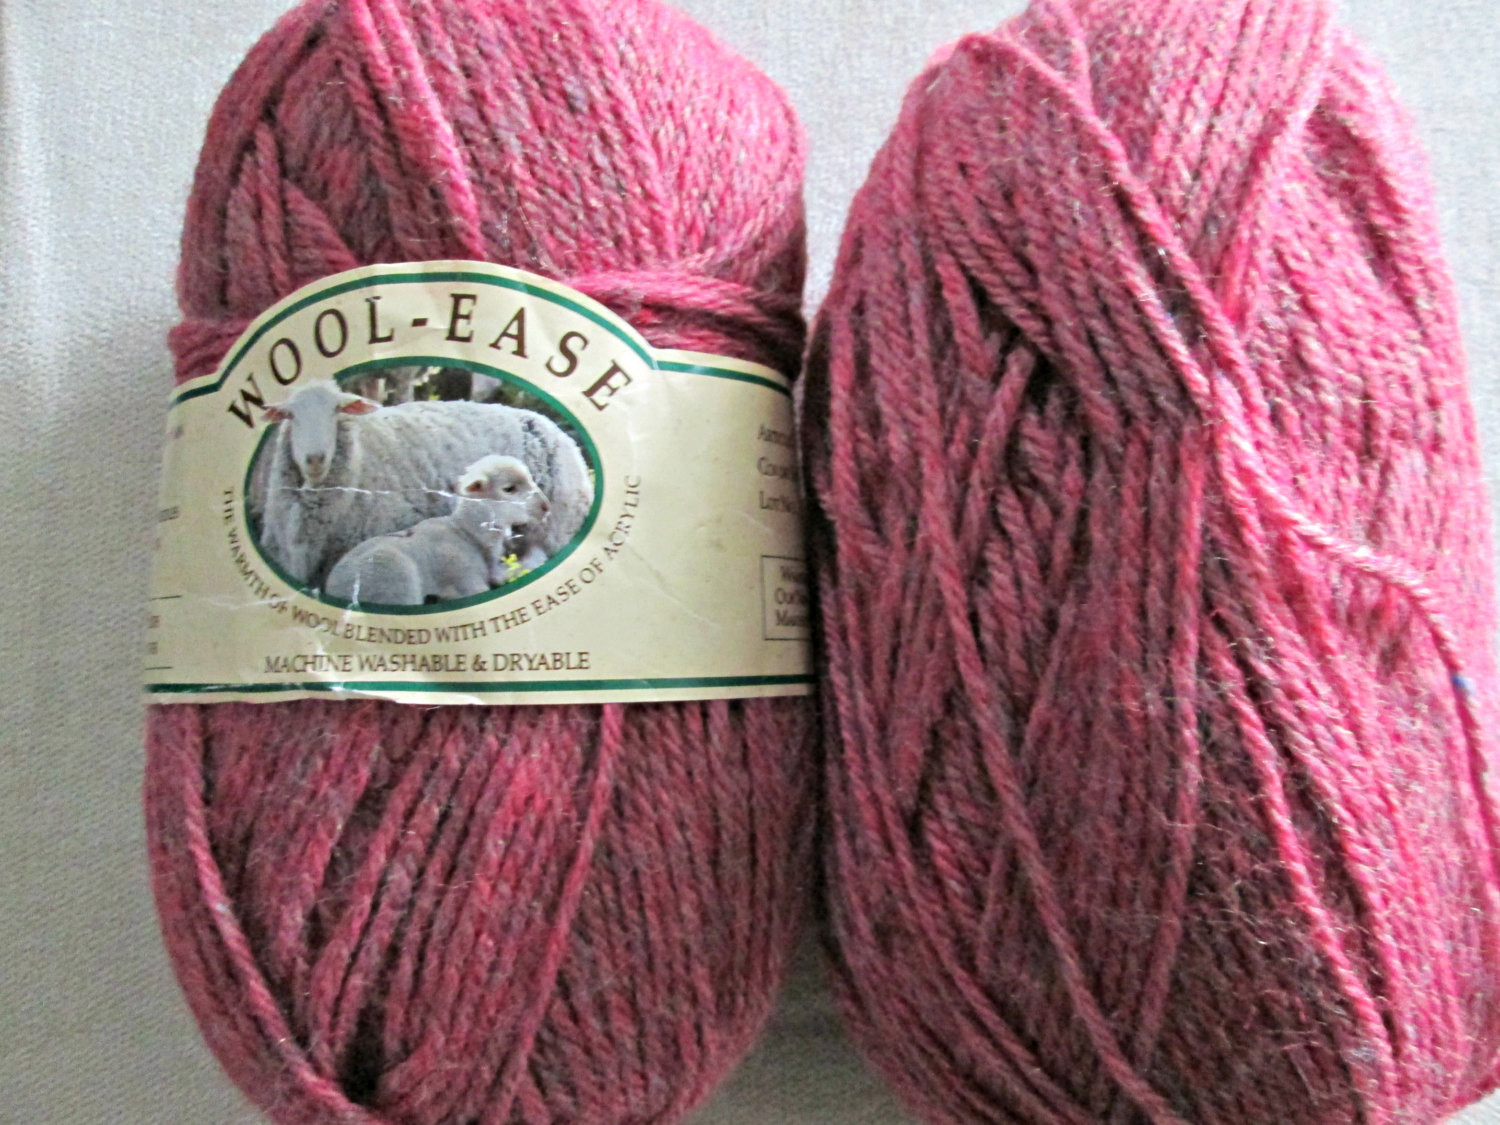 Lion Brand Wool Ease Lovely Lion Brand Wool Ease Worsted Weight Yarn Discontinued Color Of Lion Brand Wool Ease Elegant Lion Brand Wool Ease Crochet Yarn & Wool